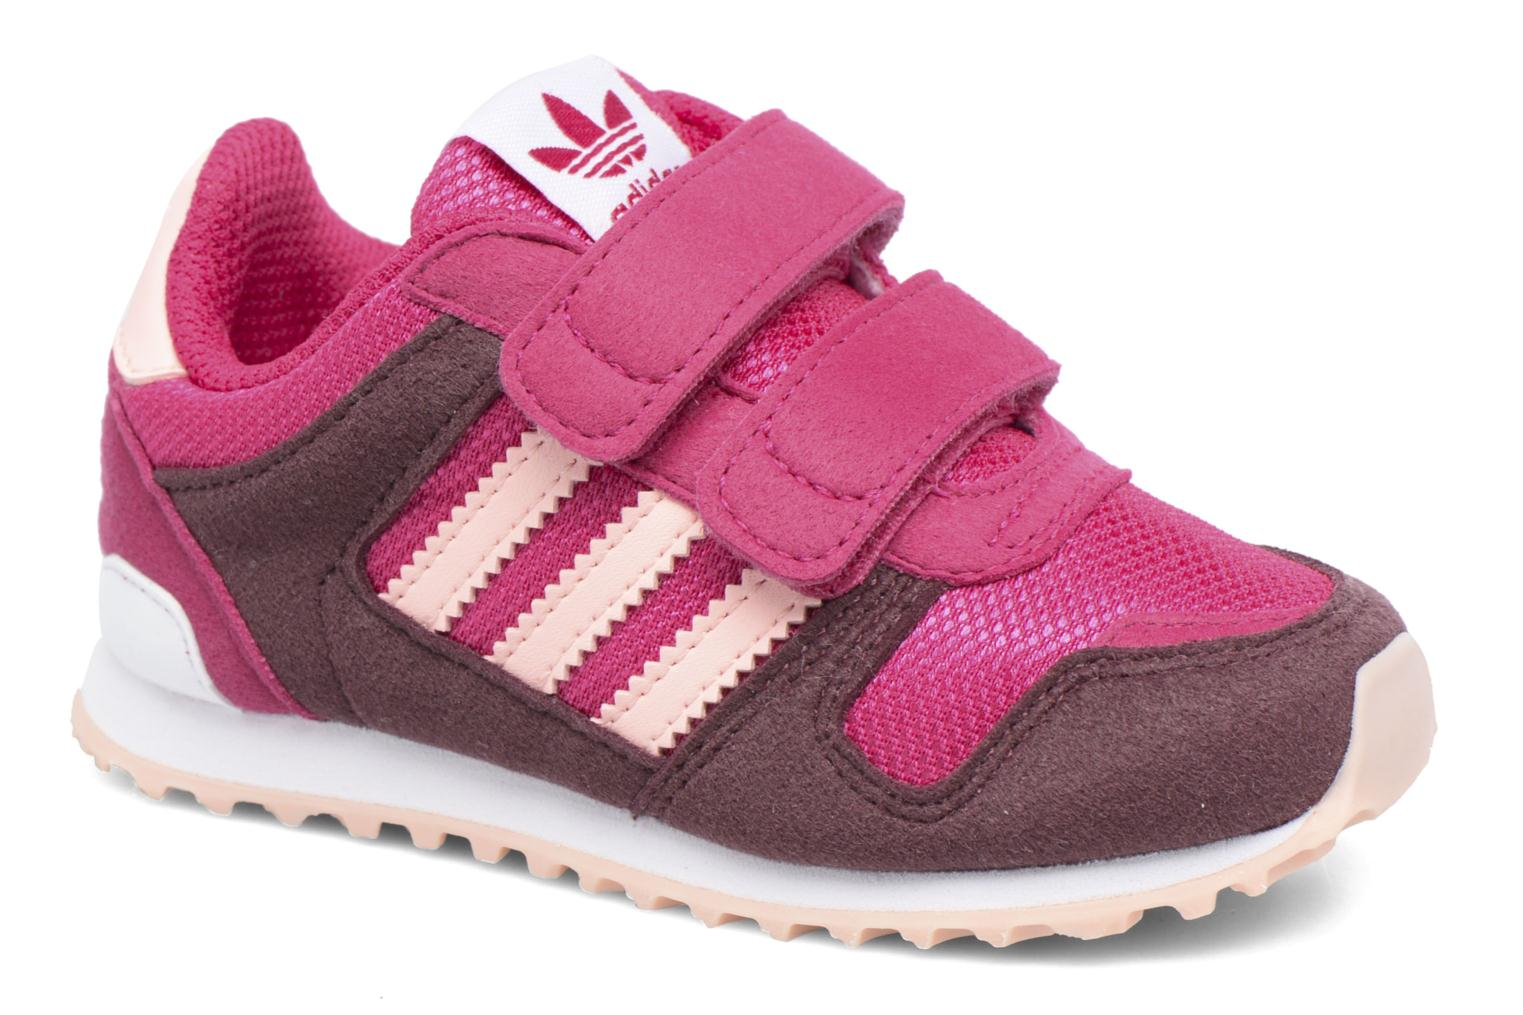 Zx 700 Cf I Rosecl/Brucor/Lidevi